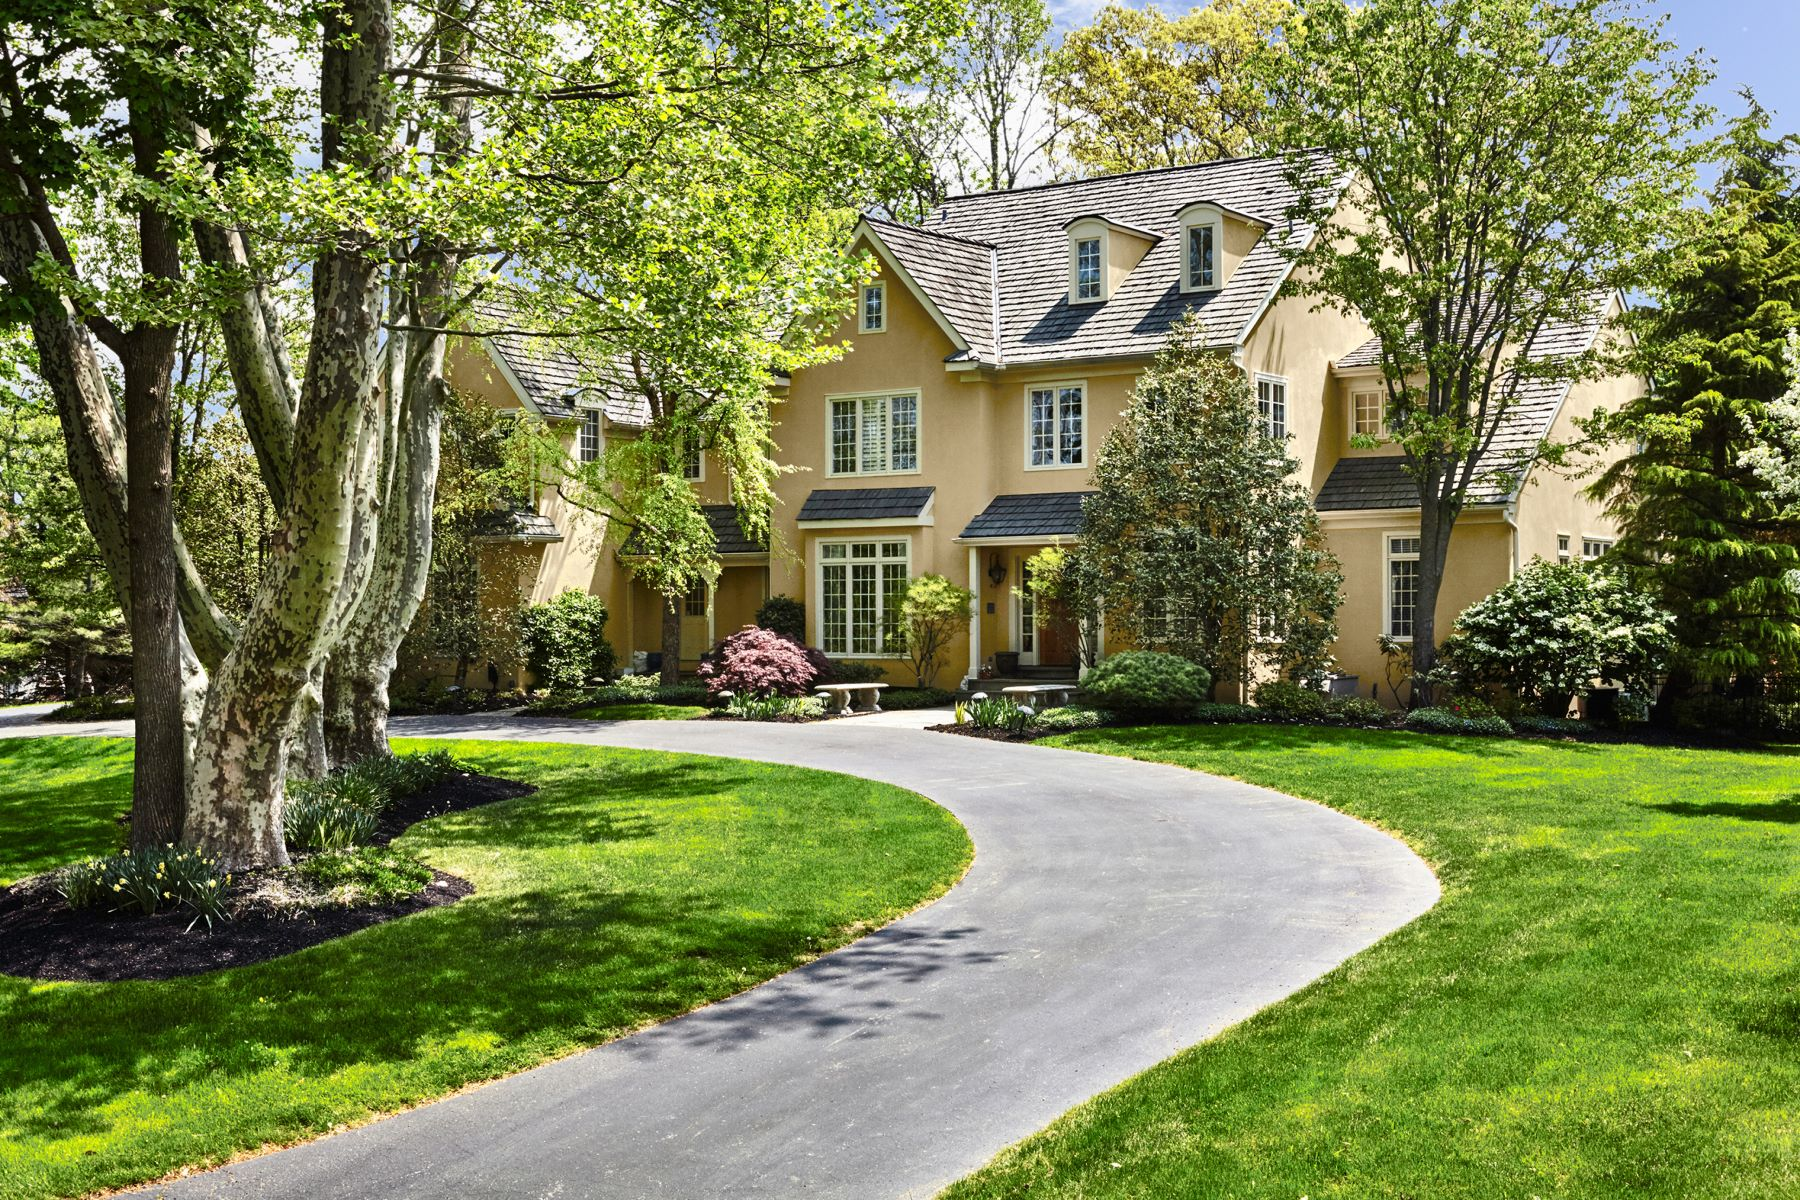 Single Family Home for Sale at 11 Harrison Dr 11 HARRISON DR Newtown Square, Pennsylvania 19073 United States